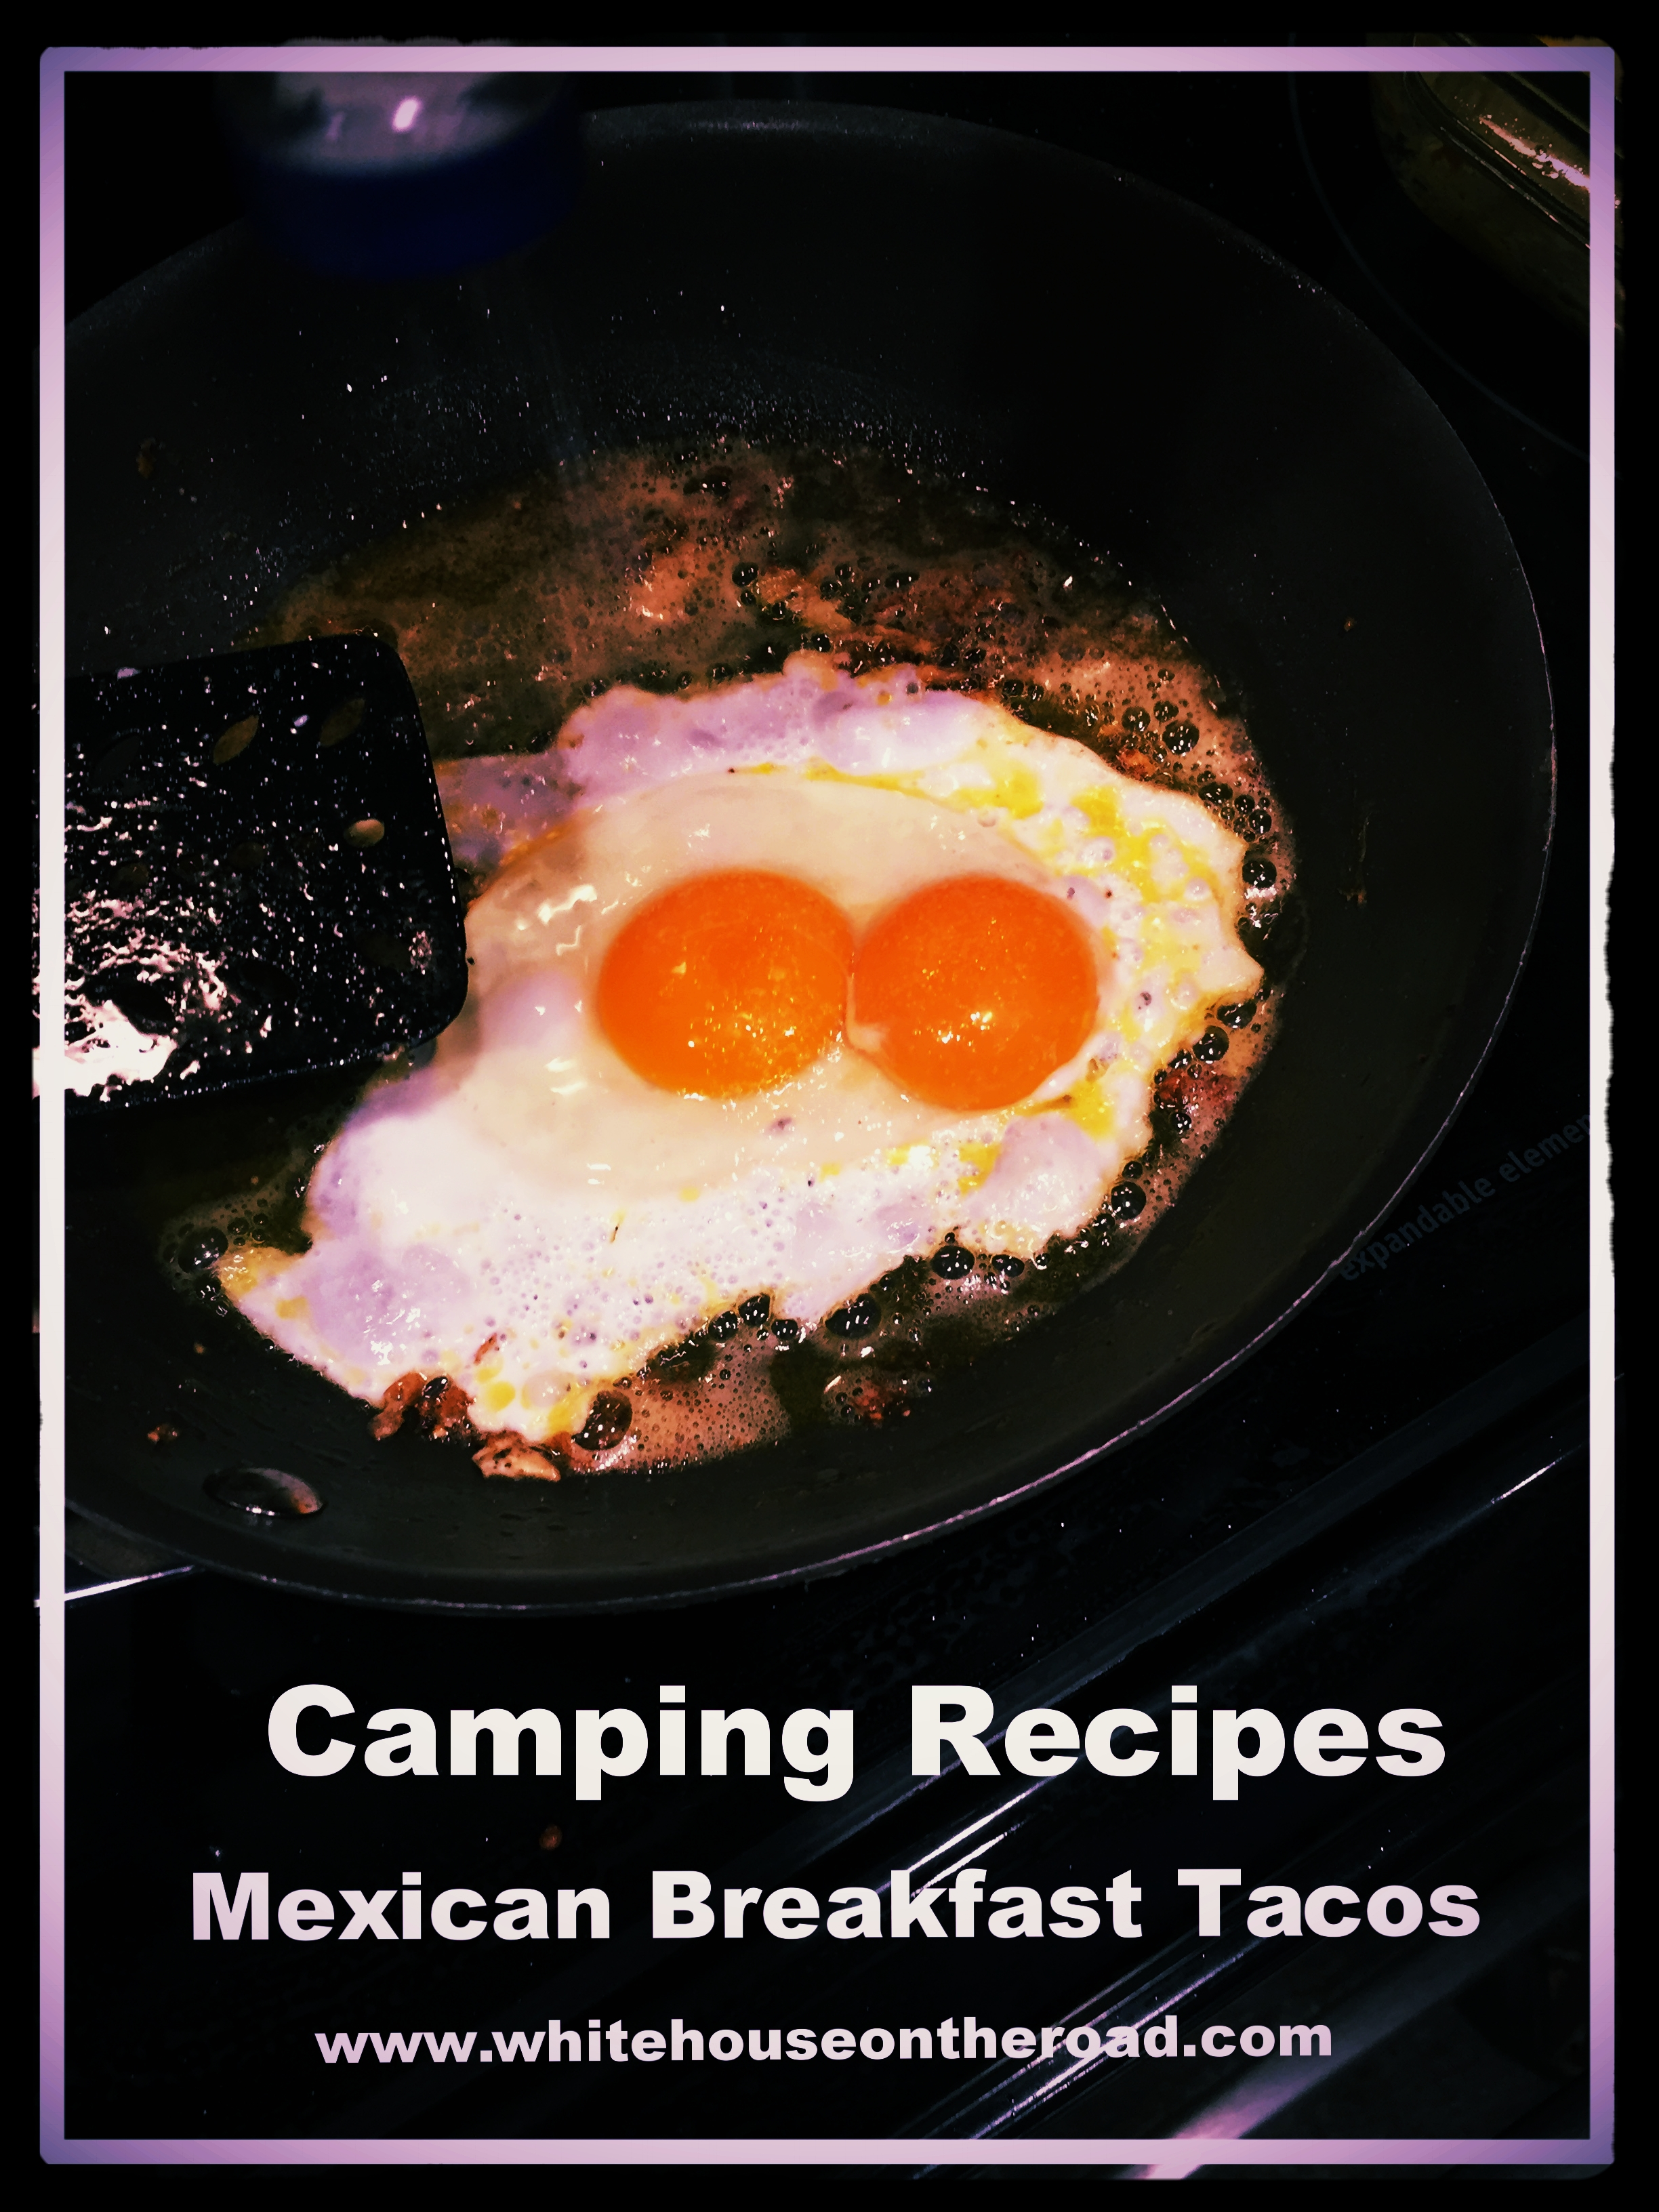 You can cook your eggs over the stove, camp fire or grill.